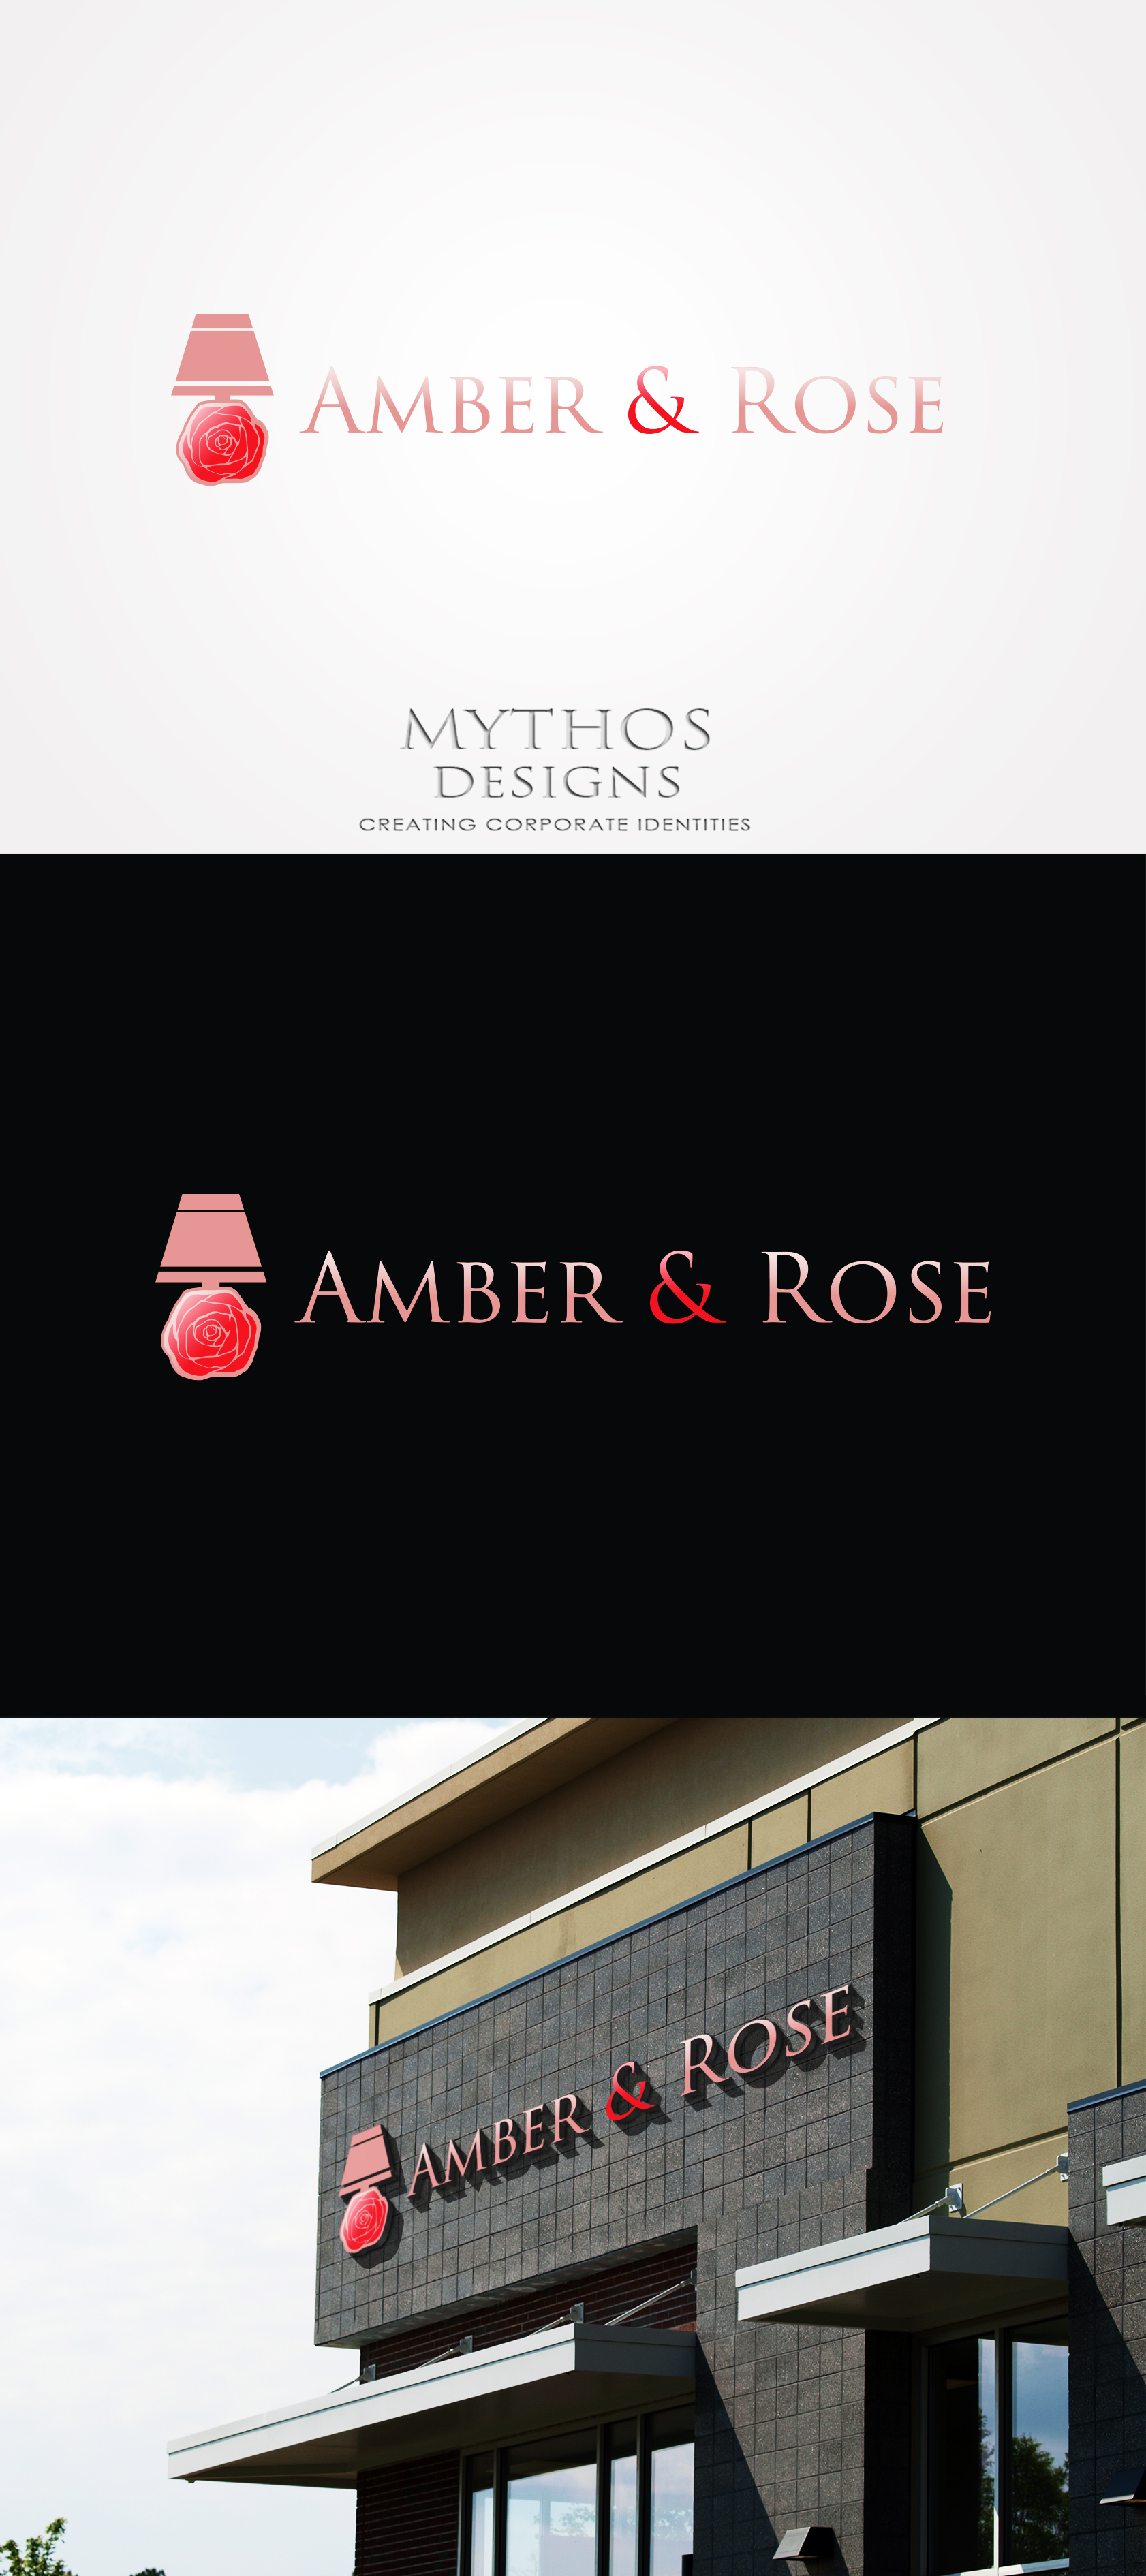 Logo Design by Mythos Designs - Entry No. 57 in the Logo Design Contest Creative Logo Design for Amber & Rose.